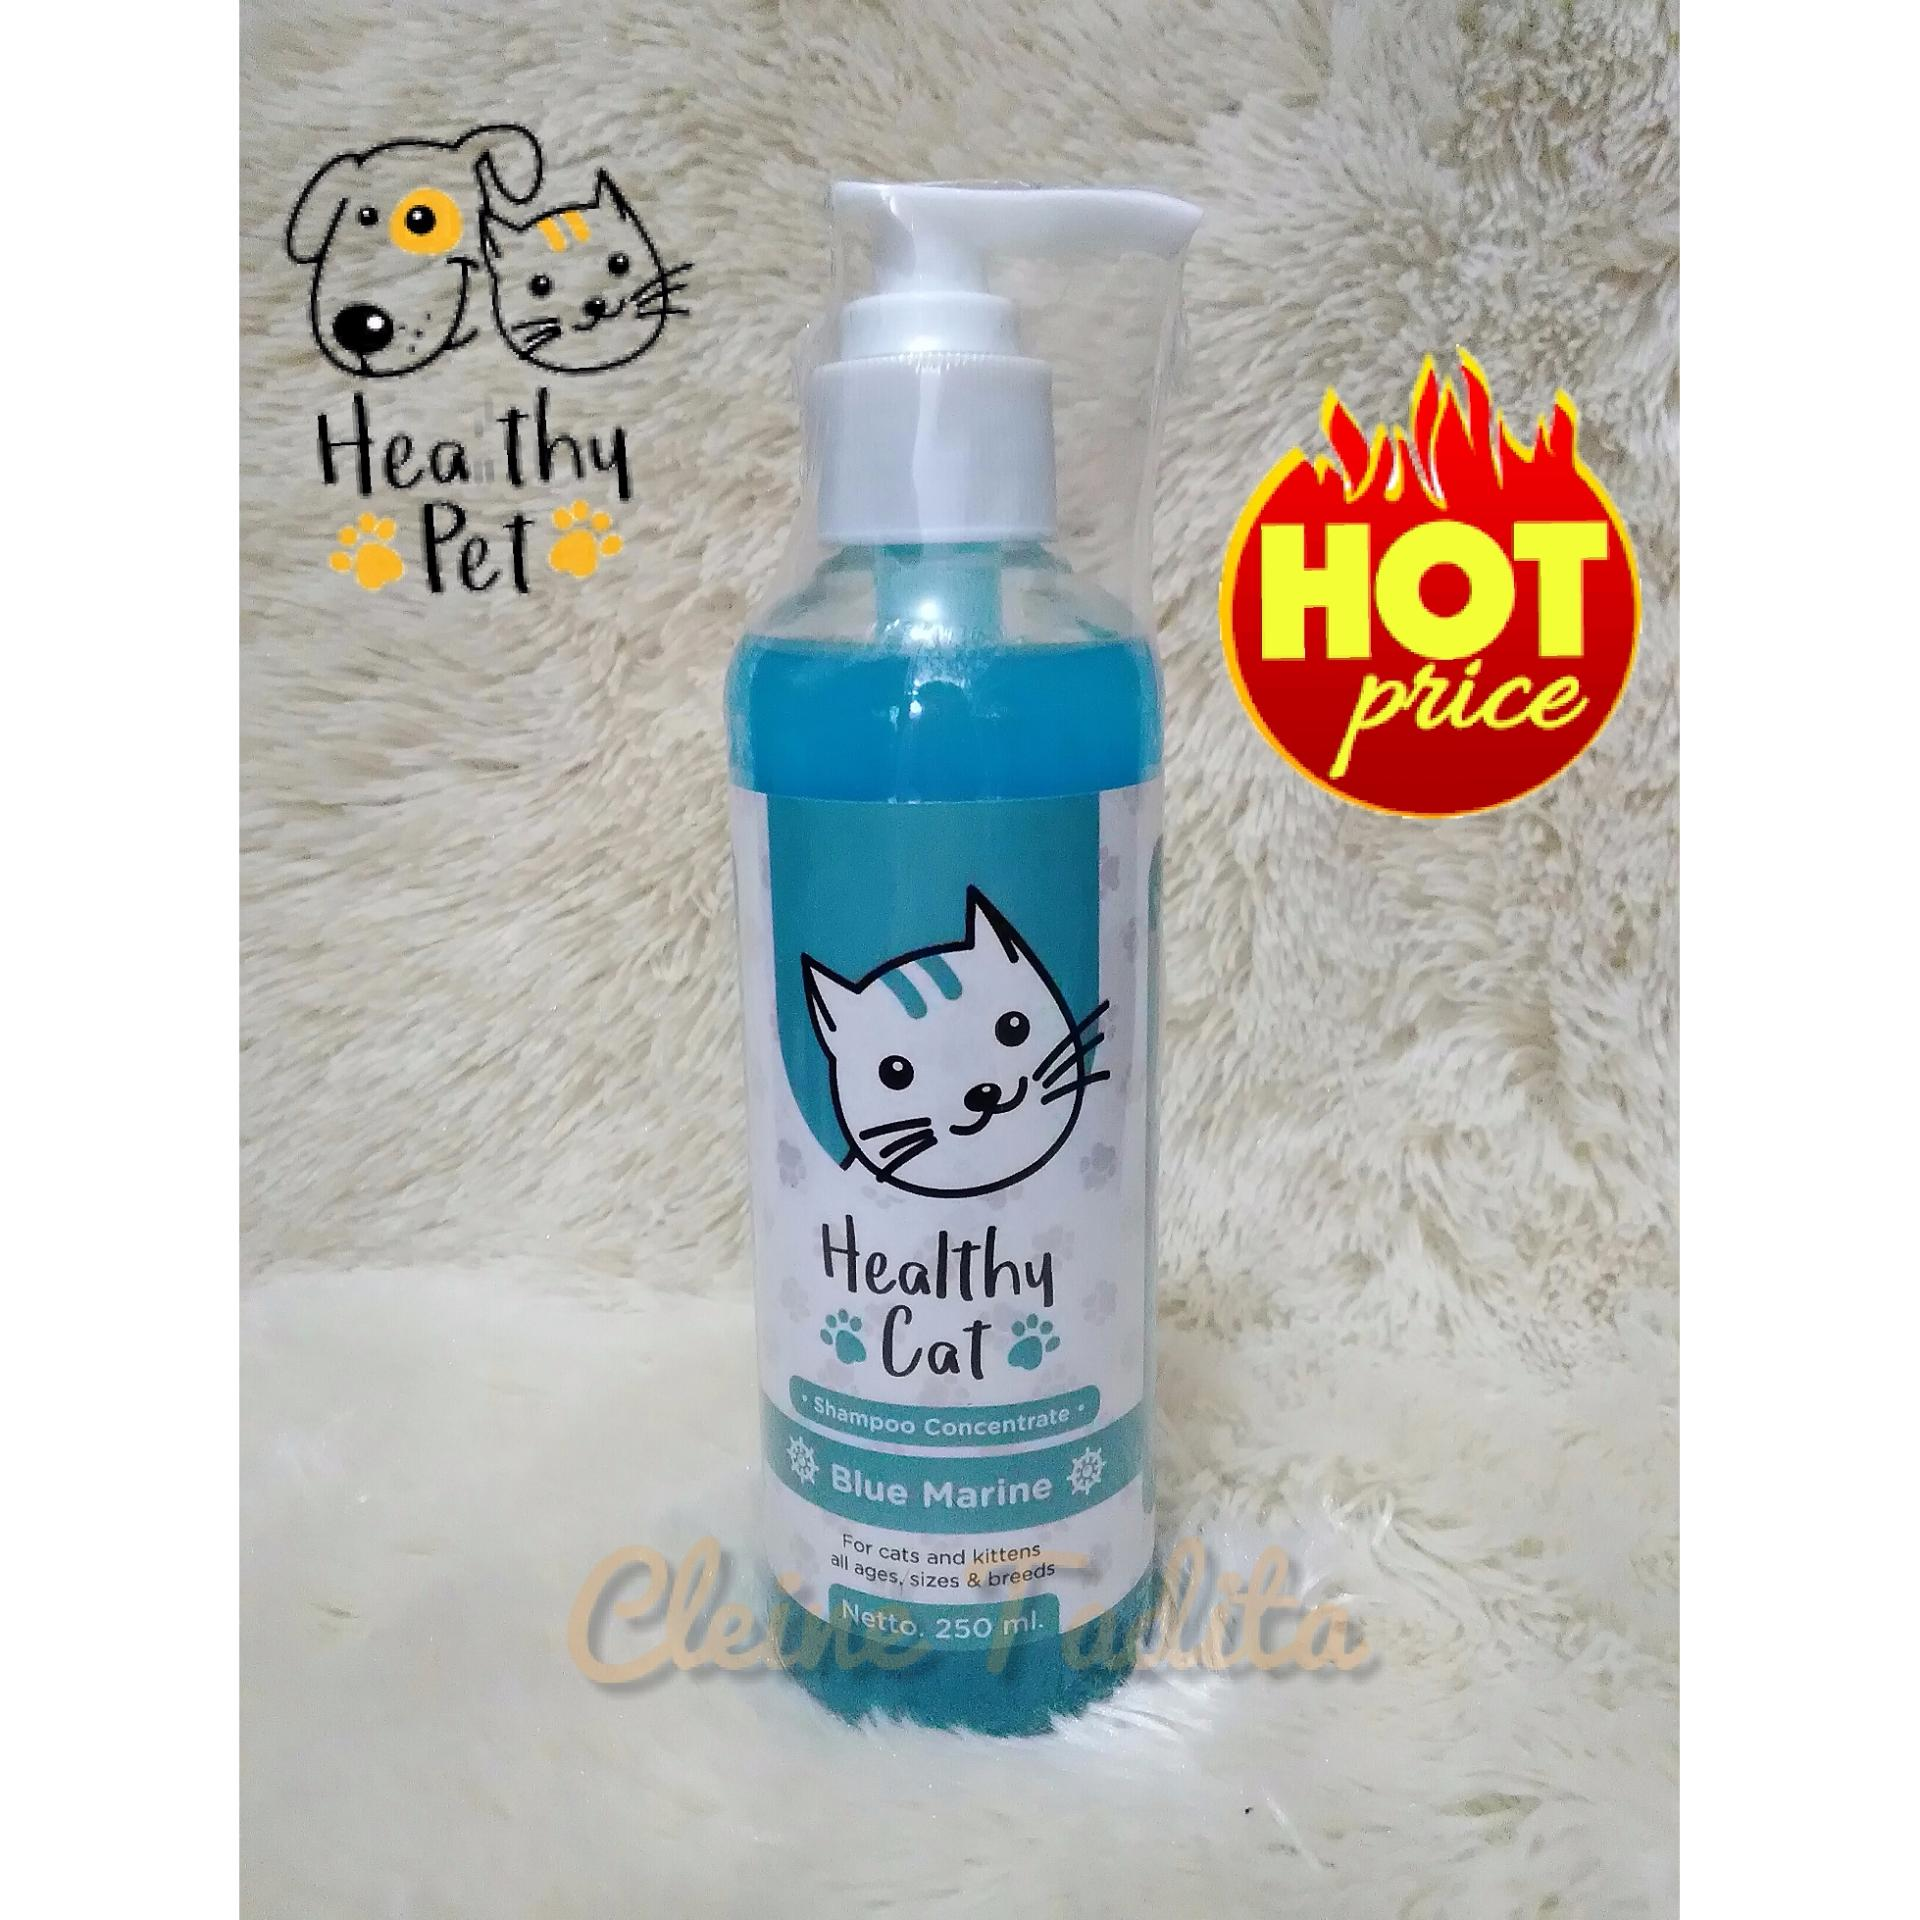 shampoo concentrate healthy cat - blue marine conditioner